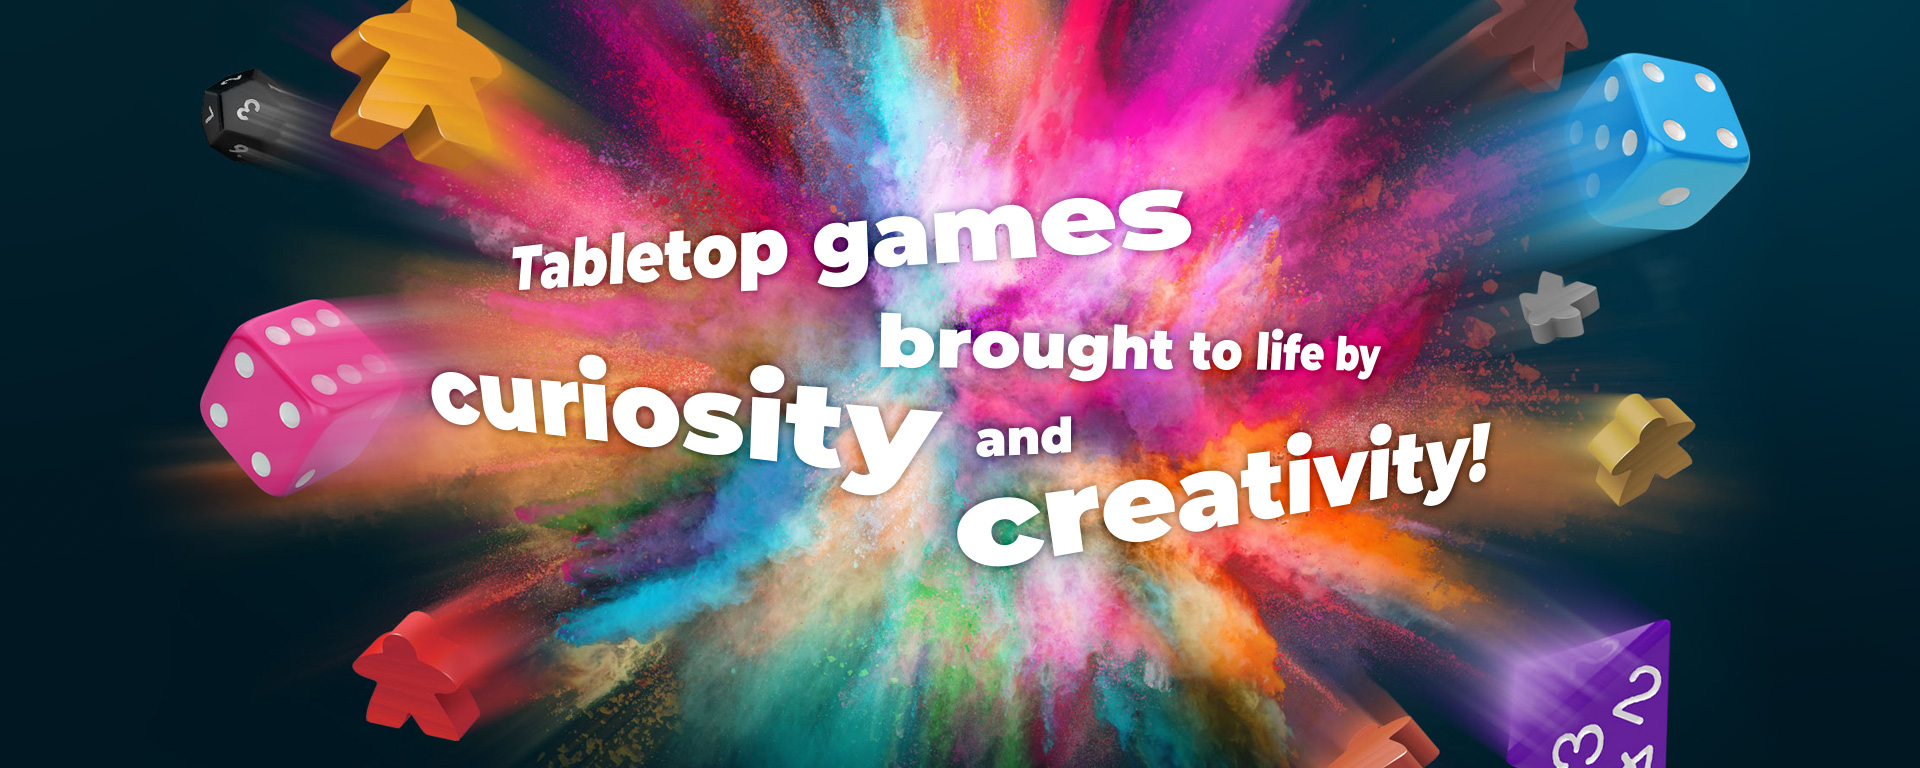 Tabletop games brought to life by curiosity and creativity!